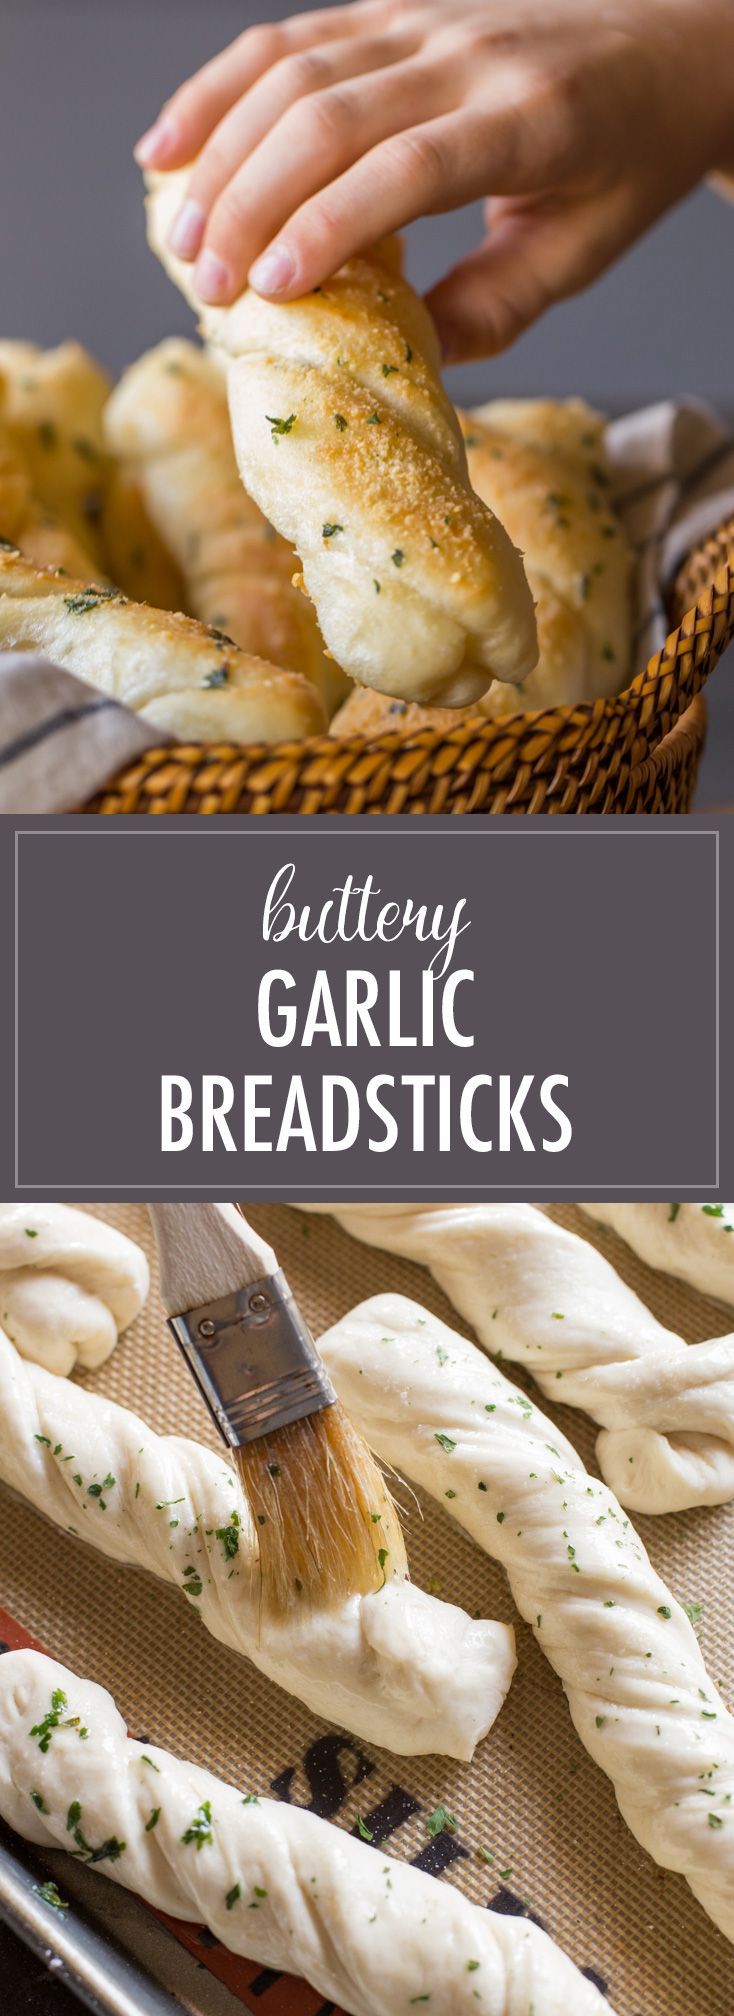 Fresh Buttery Garlic Breadsticks right out of the oven are hard to beat! I'll show you just how to make them step by step!